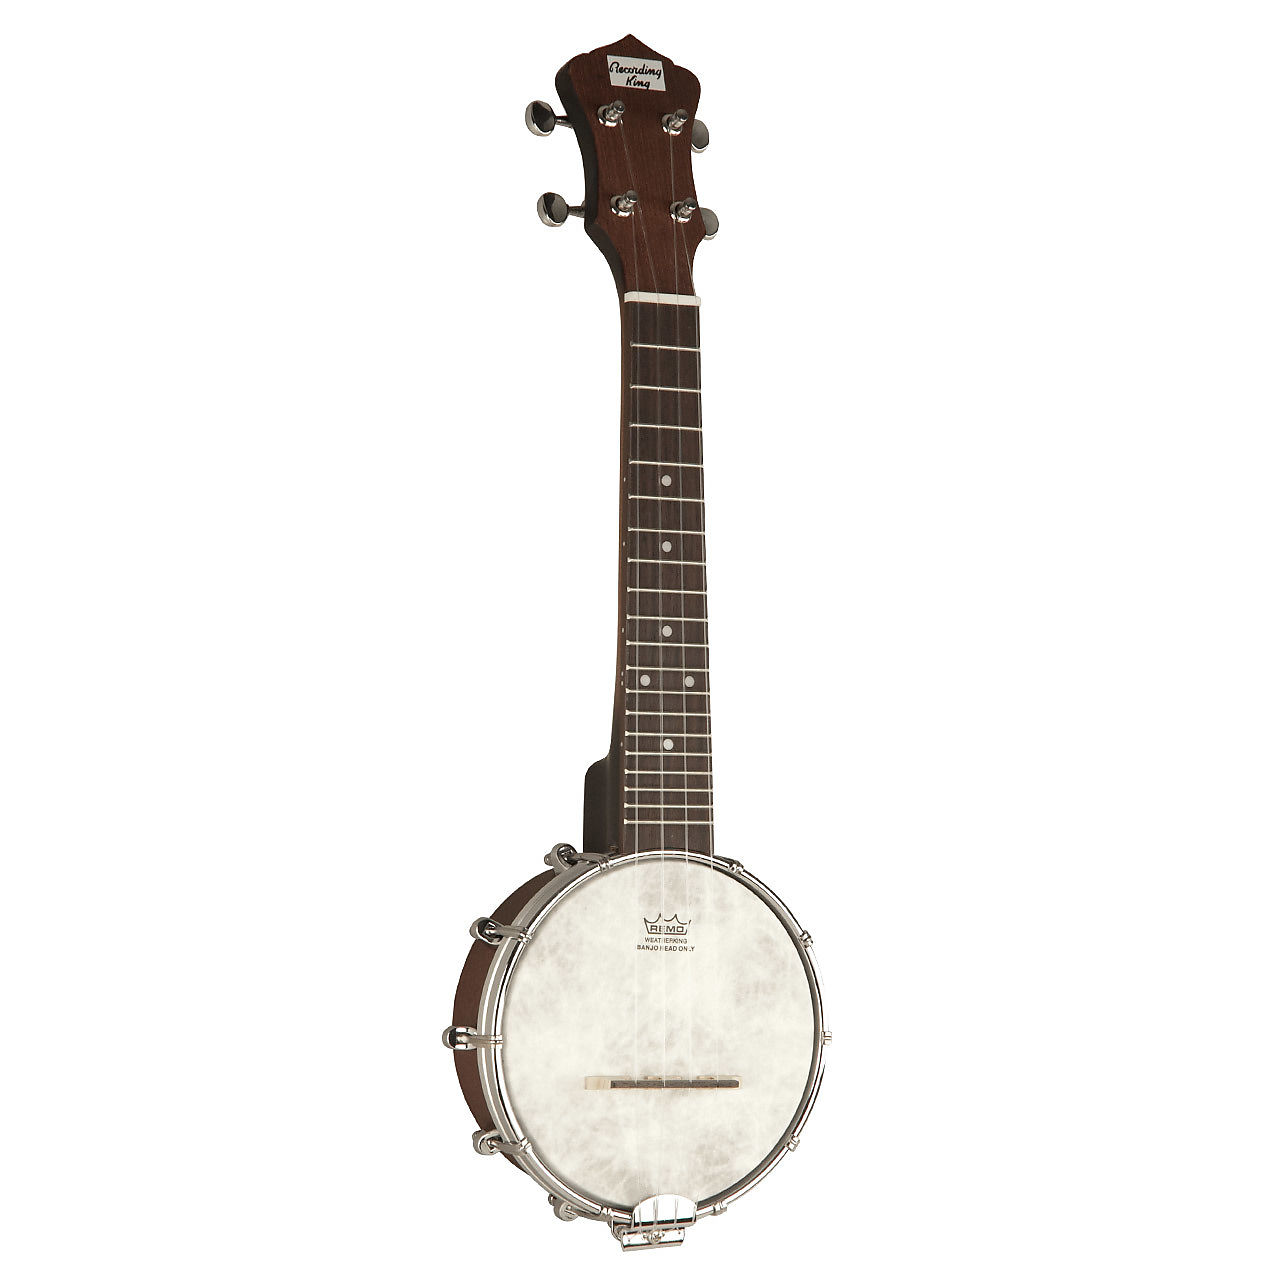 banjo legacy Here are 10 beginner banjo songs for the beginning bluegrass banjo playerby getting these tunes under your fingers you will be able to get some basic techniques together and go out to a jam to play with others with a small repertoire that other bluegrass musicians will know.